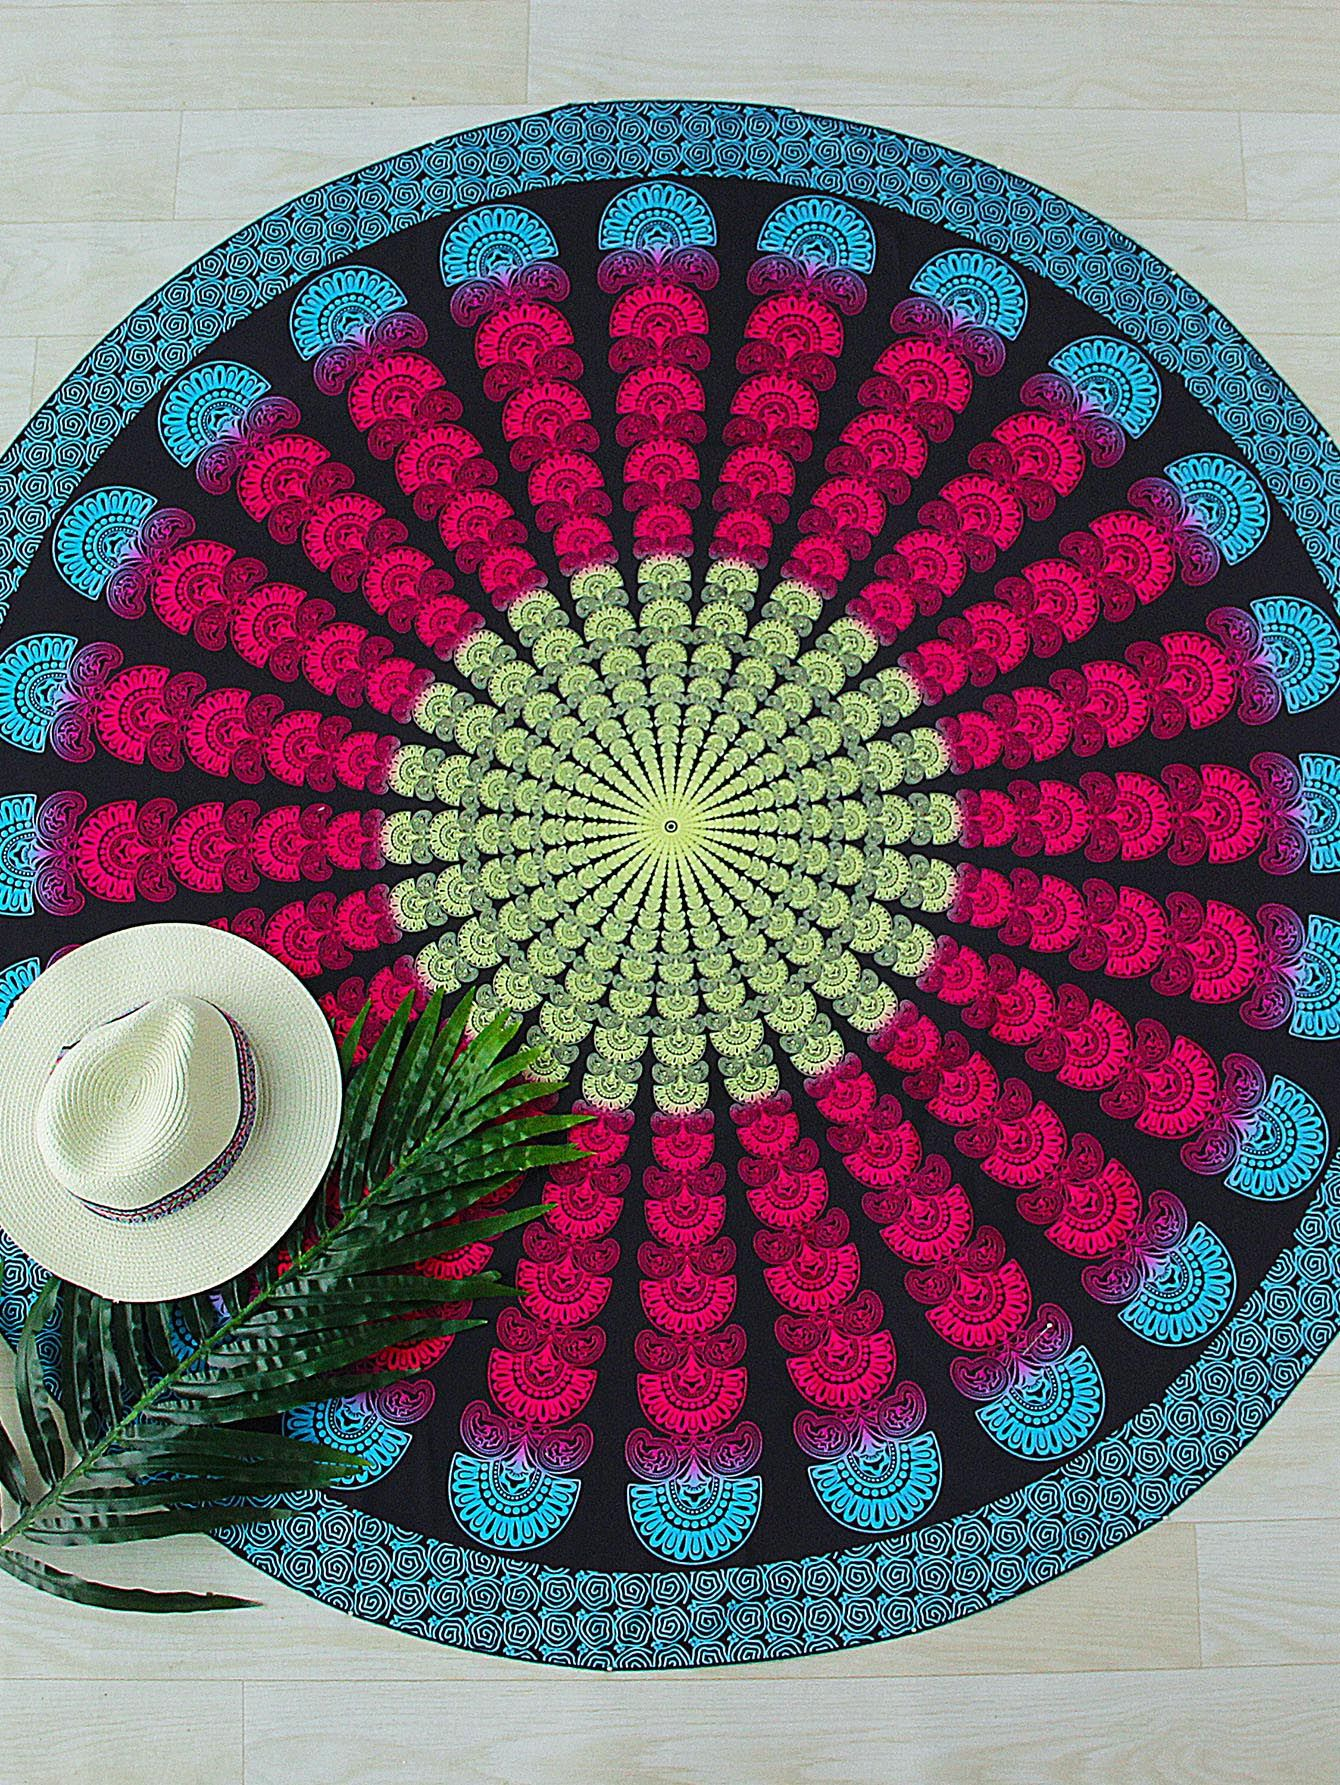 Buy it now. Red And Blue Print Vintage Round Beach Blanket. Red Blue Cover Ups & Beach Dresses Vacation Polyester Print Swimwear. , vestidoinformal, casual, camiseta, playeros, informales, túnica, estilocamiseta, camisola, vestidodealgodón, vestidosdealgodón, verano, informal, playa, playero, capa, capas, vestidobabydoll, camisole, túnica, shift, pleat, pleated, drape, t-shape, daisy, foldedshoulder, summer, loosefit, tunictop, swing, day, offtheshoulder, smock, print, printed, tea, babyd...